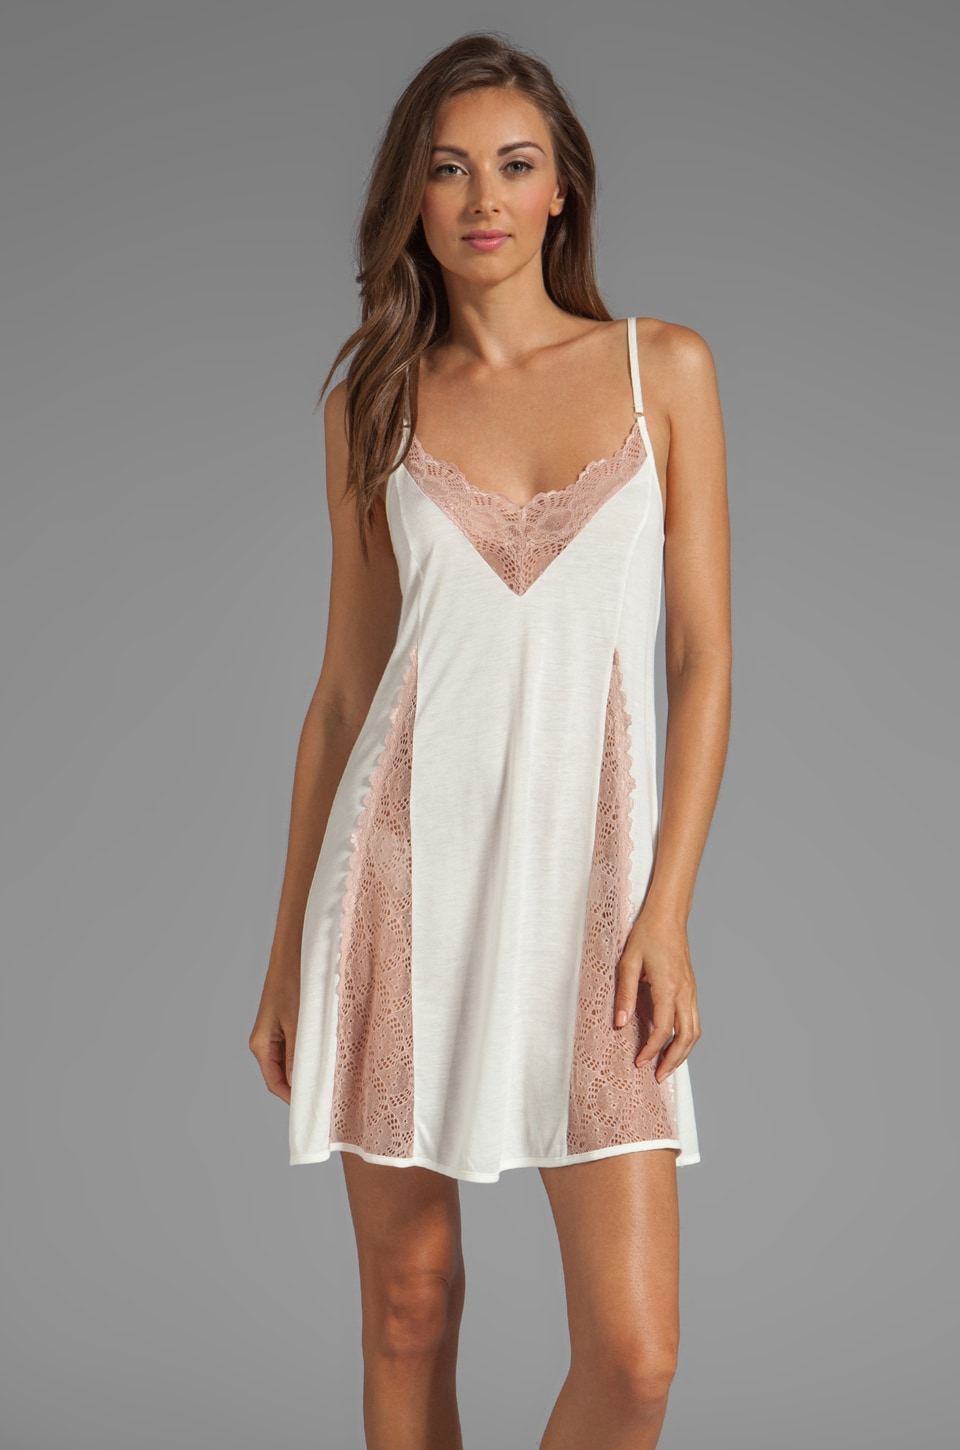 Only Hearts Venice Princess Chemise in White/Petal